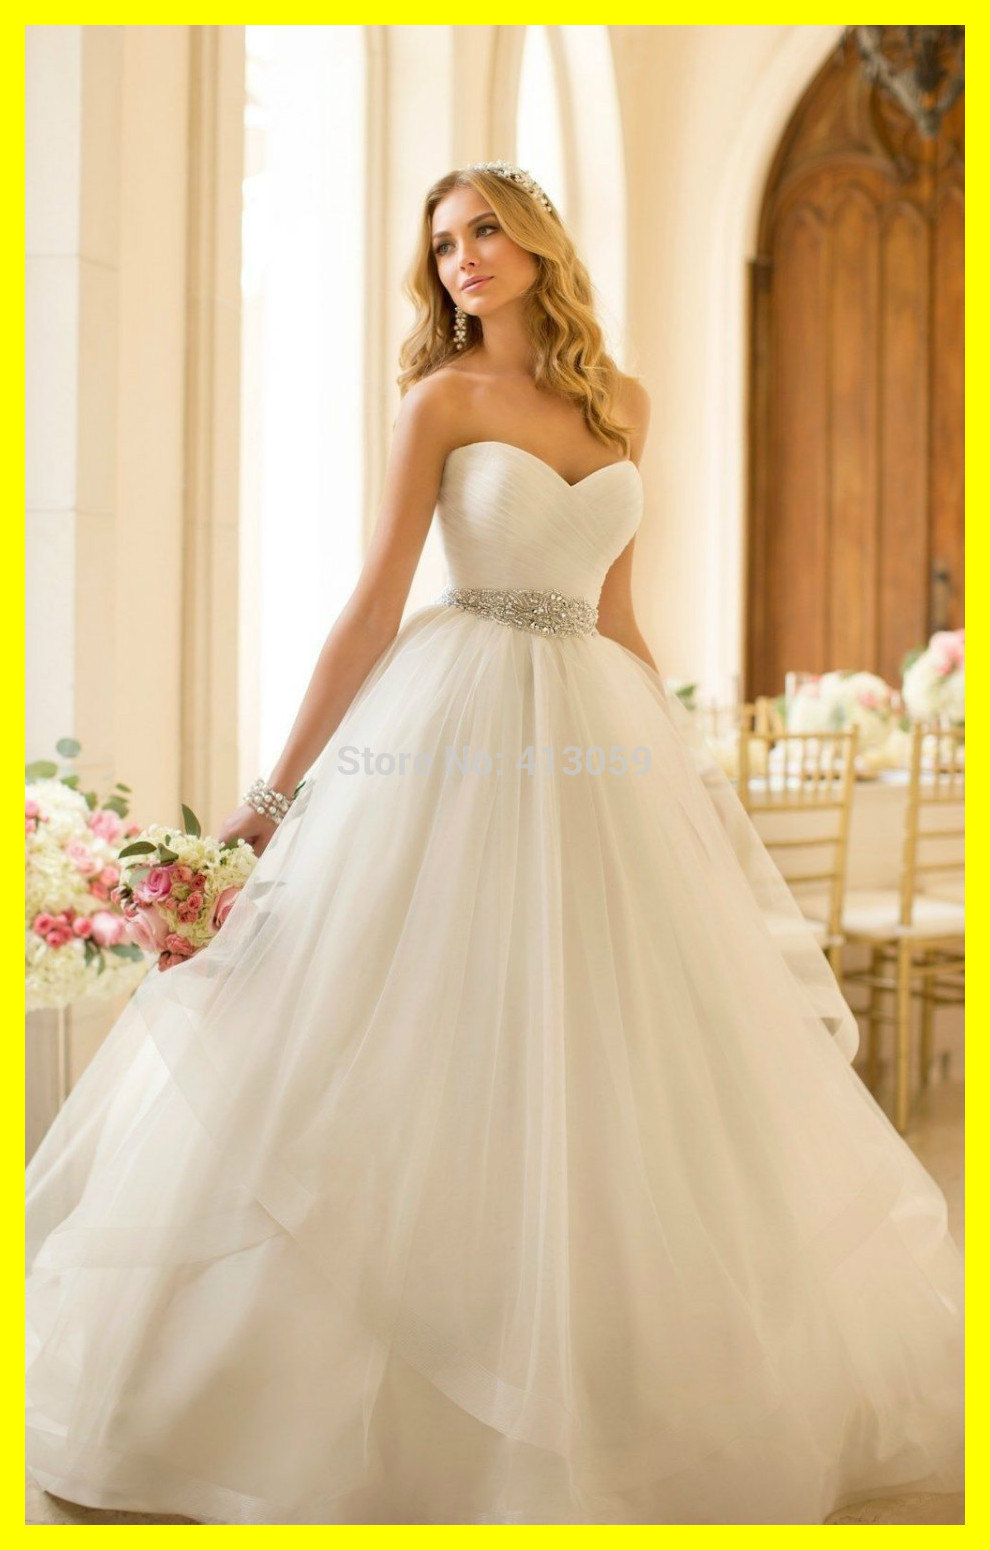 Flowy wedding dresses white and black guest chinese ball gown flowy wedding dresses white and black guest chinese ball gown floor length none beading sweetheart off the shoulder 2015 cheap in wedding dresses from ombrellifo Images